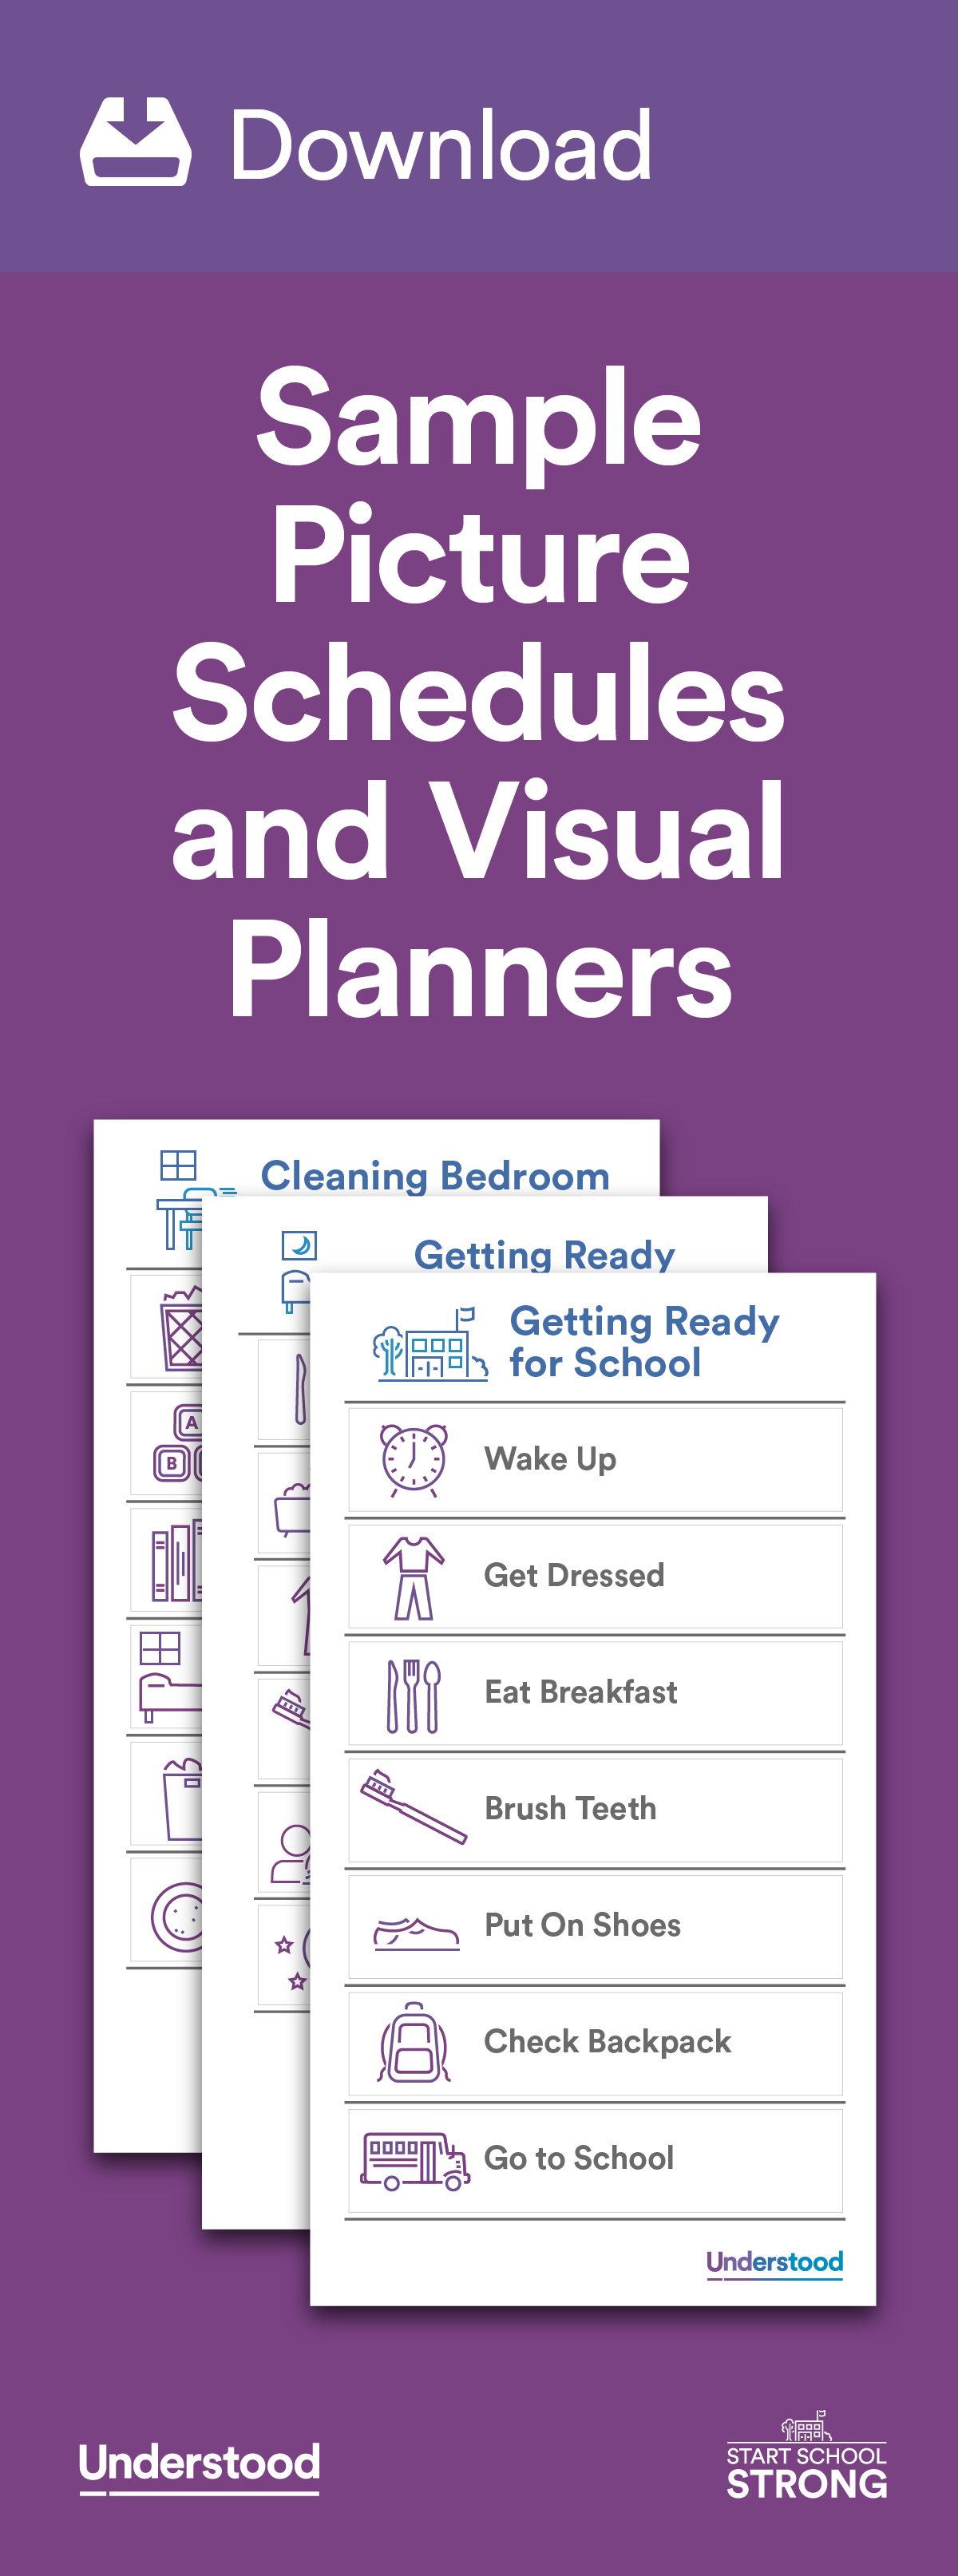 download sample picture schedules and visual planners autismus